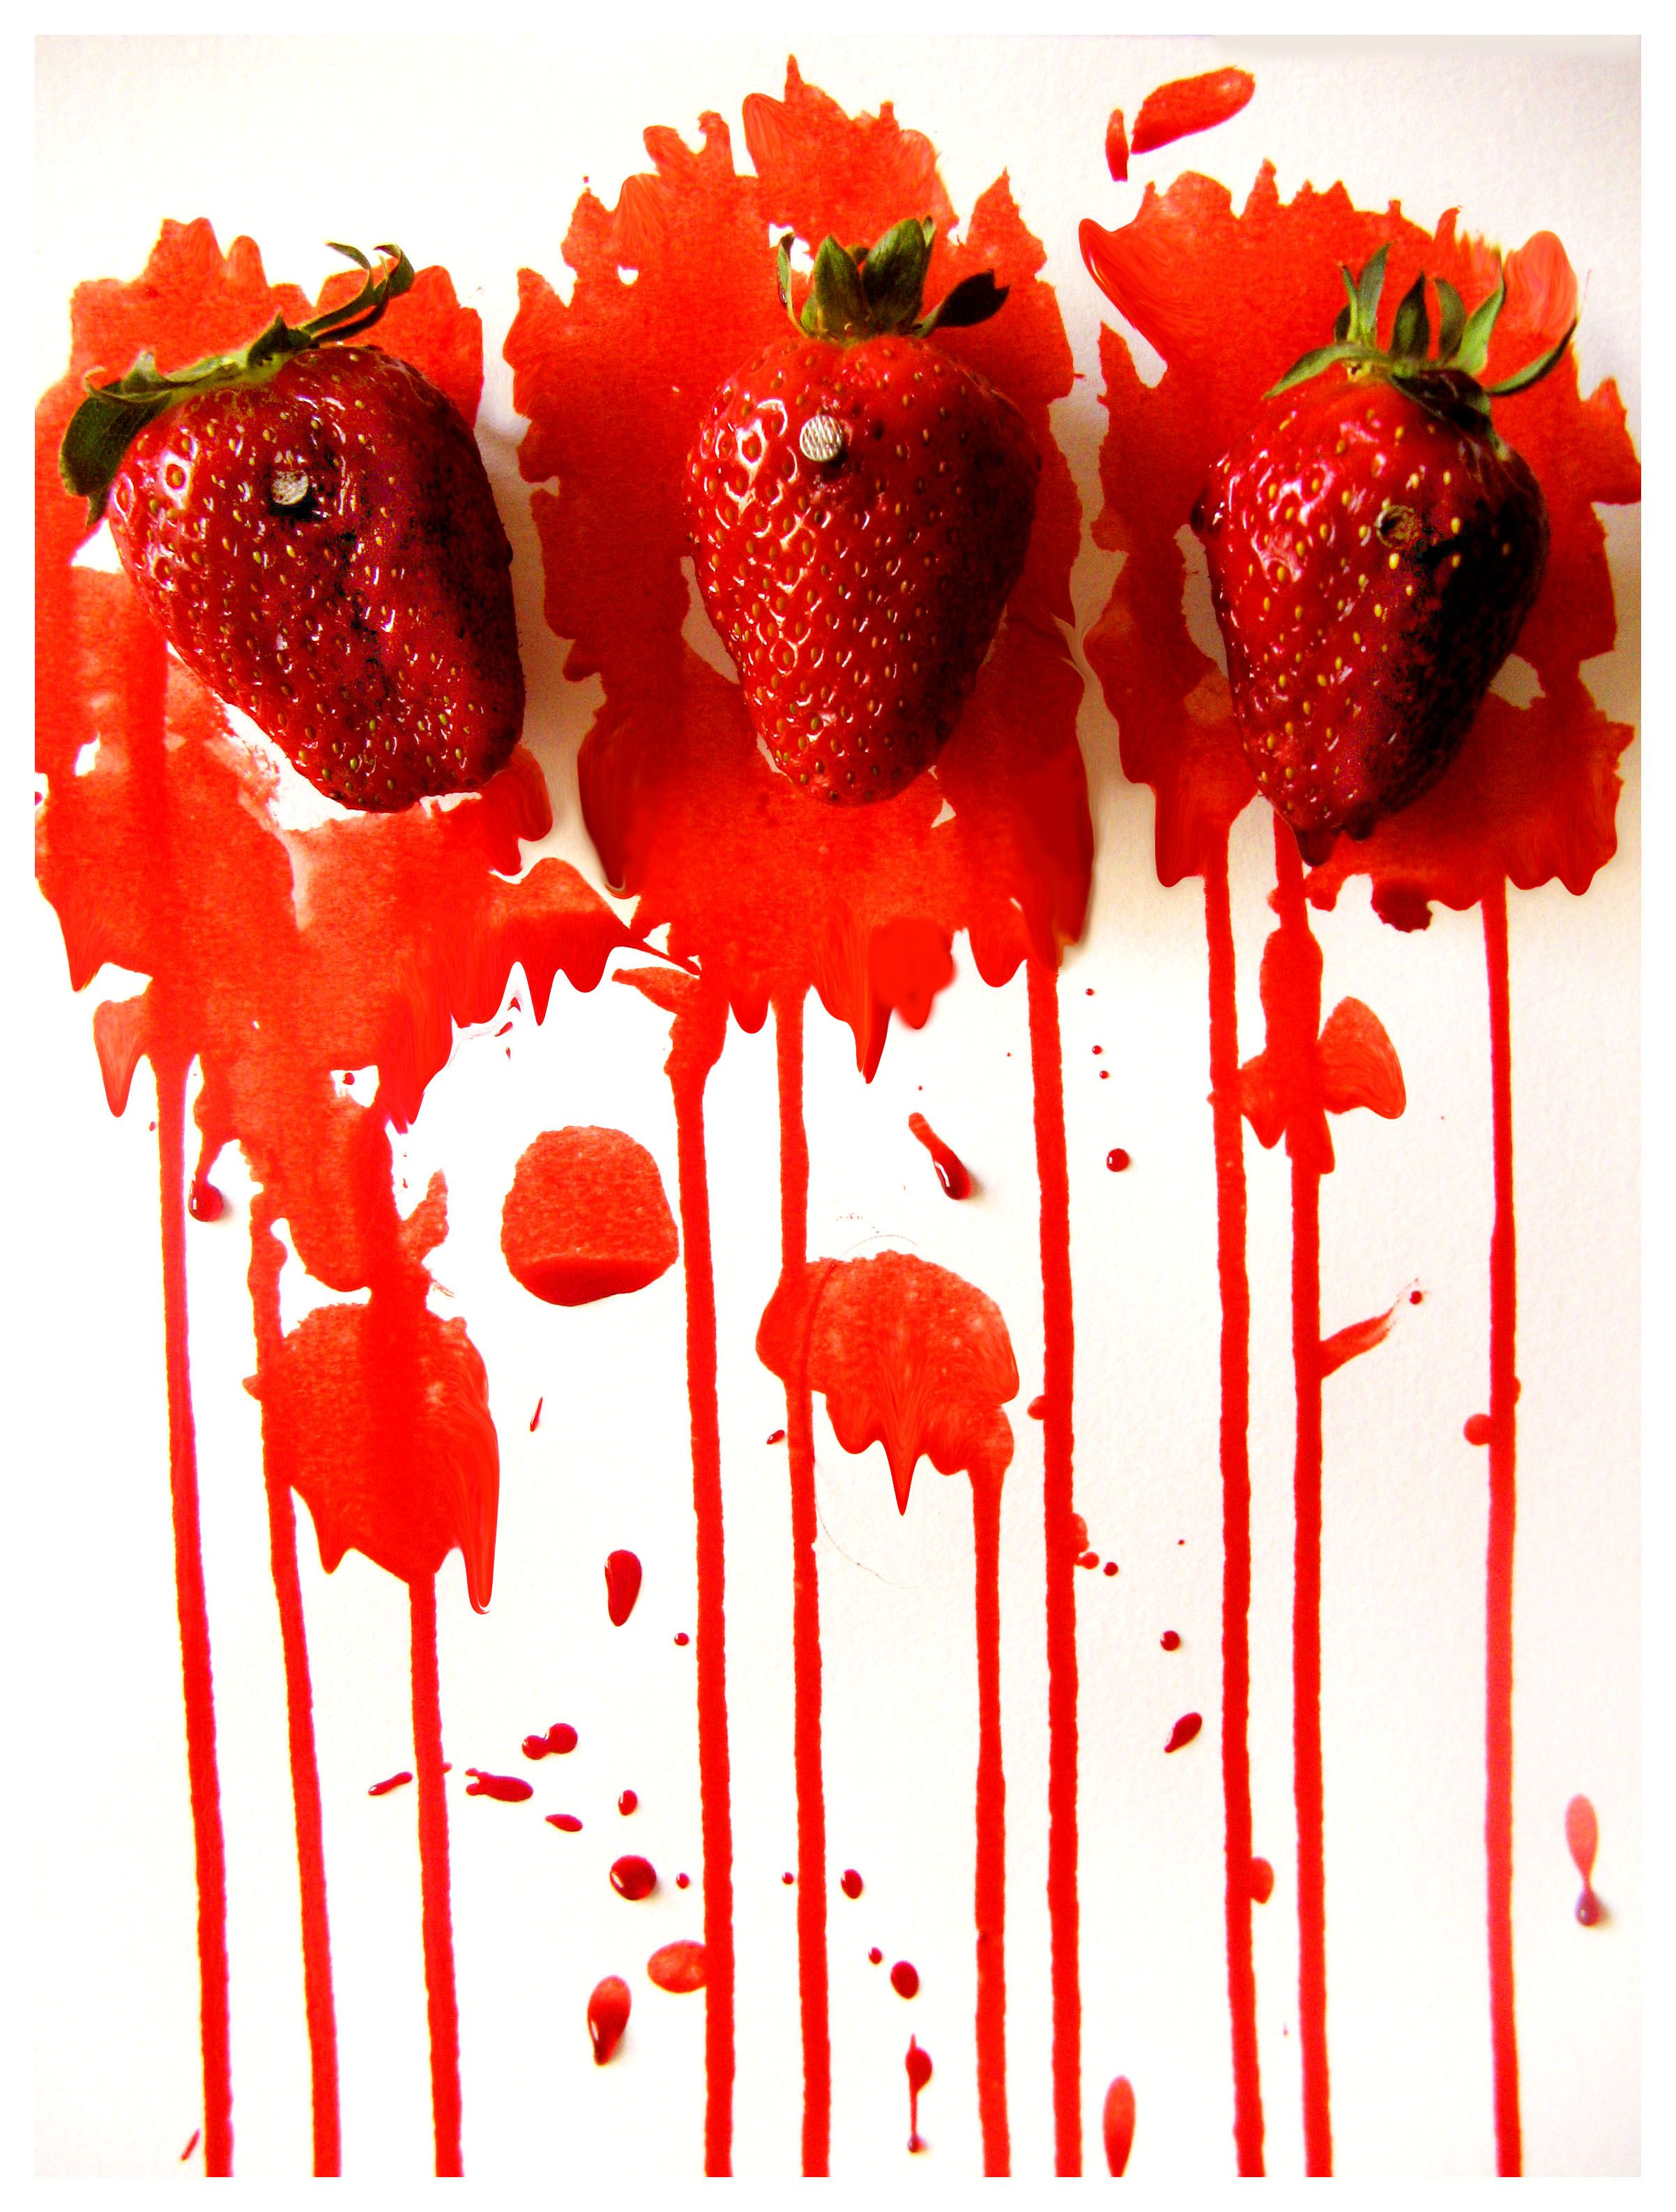 Strawberry fields forever fierce red pinterest strawberry strawberry fields forever fandeluxe Choice Image